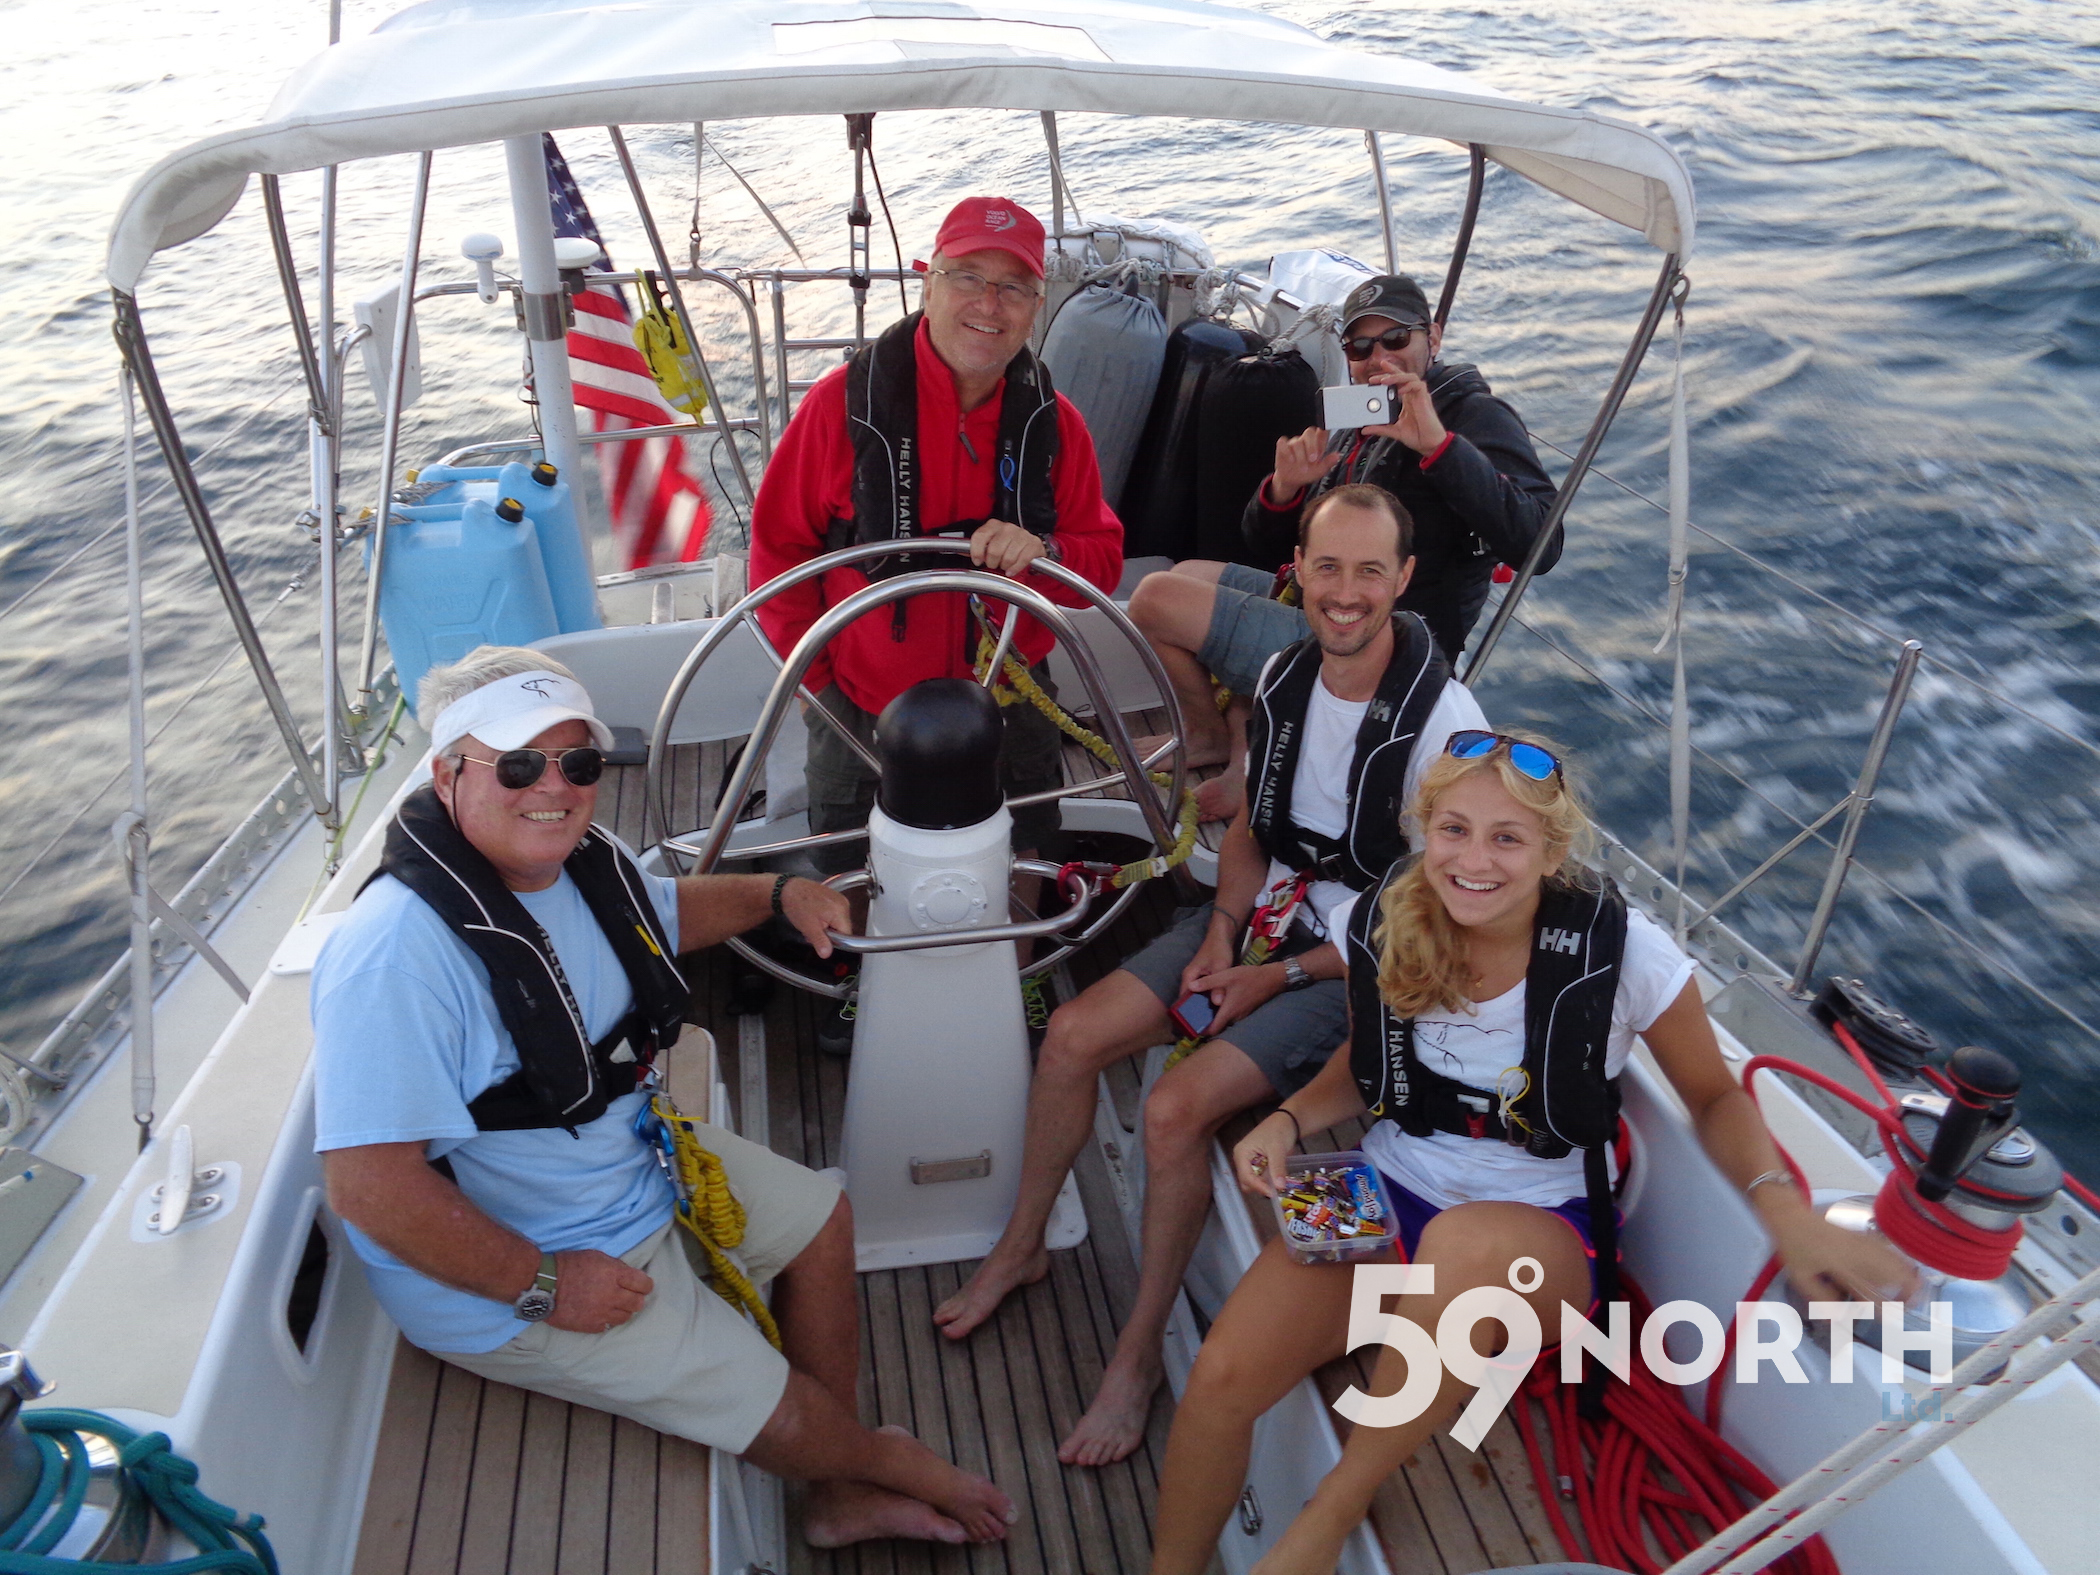 Andy's dad Dennis took over as captain from Newport to Lunenburg while Andy recovered from apendecitis surgery. July 2016